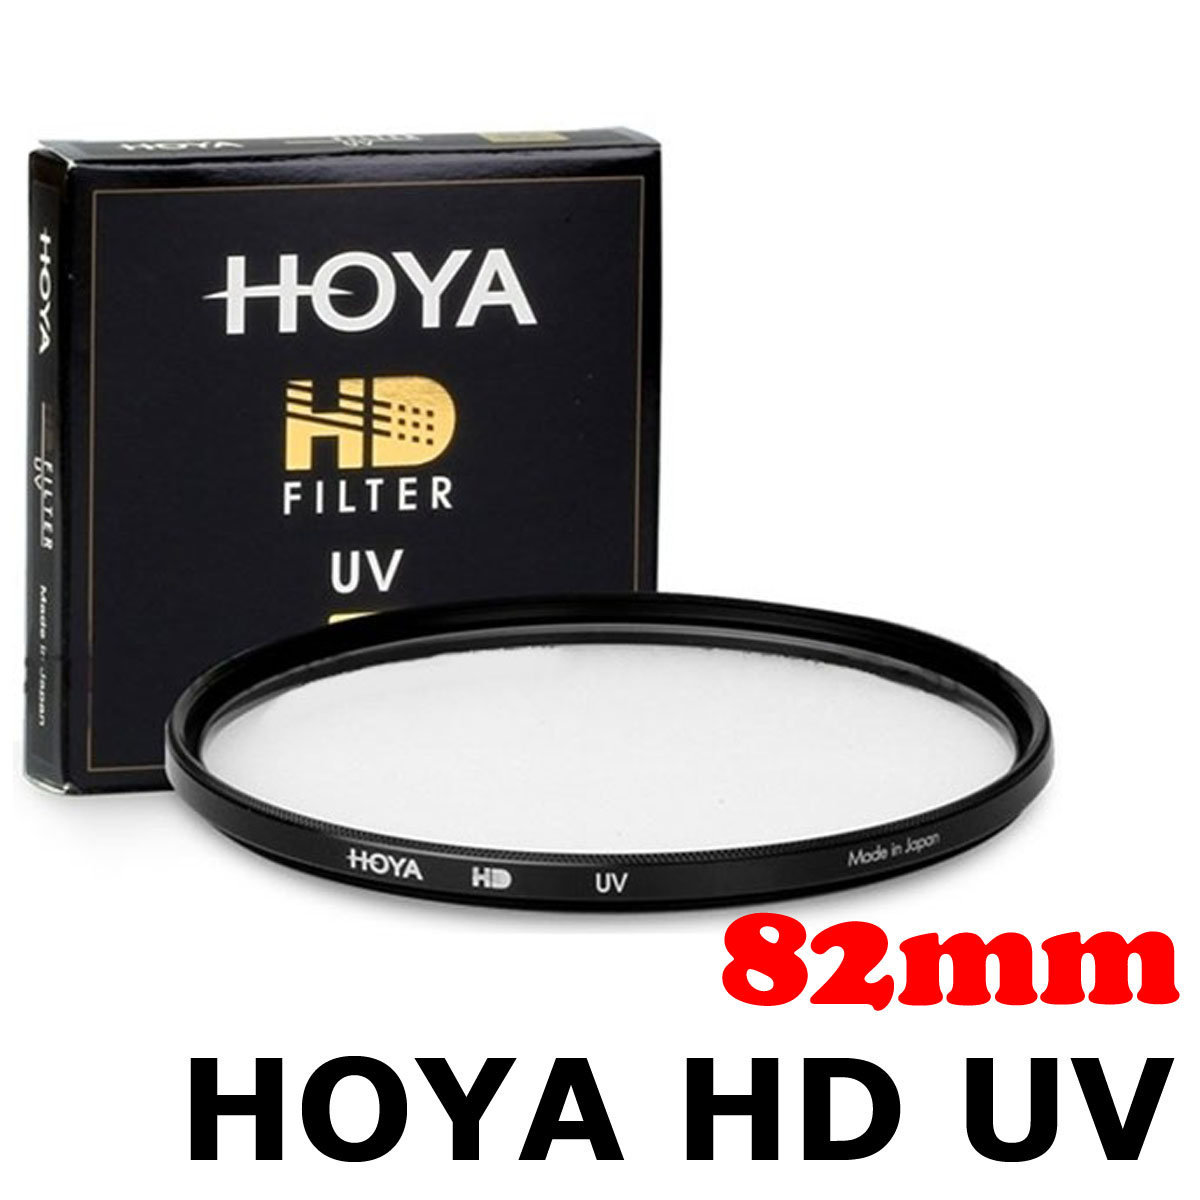 HD UV 82mm Slim Filter